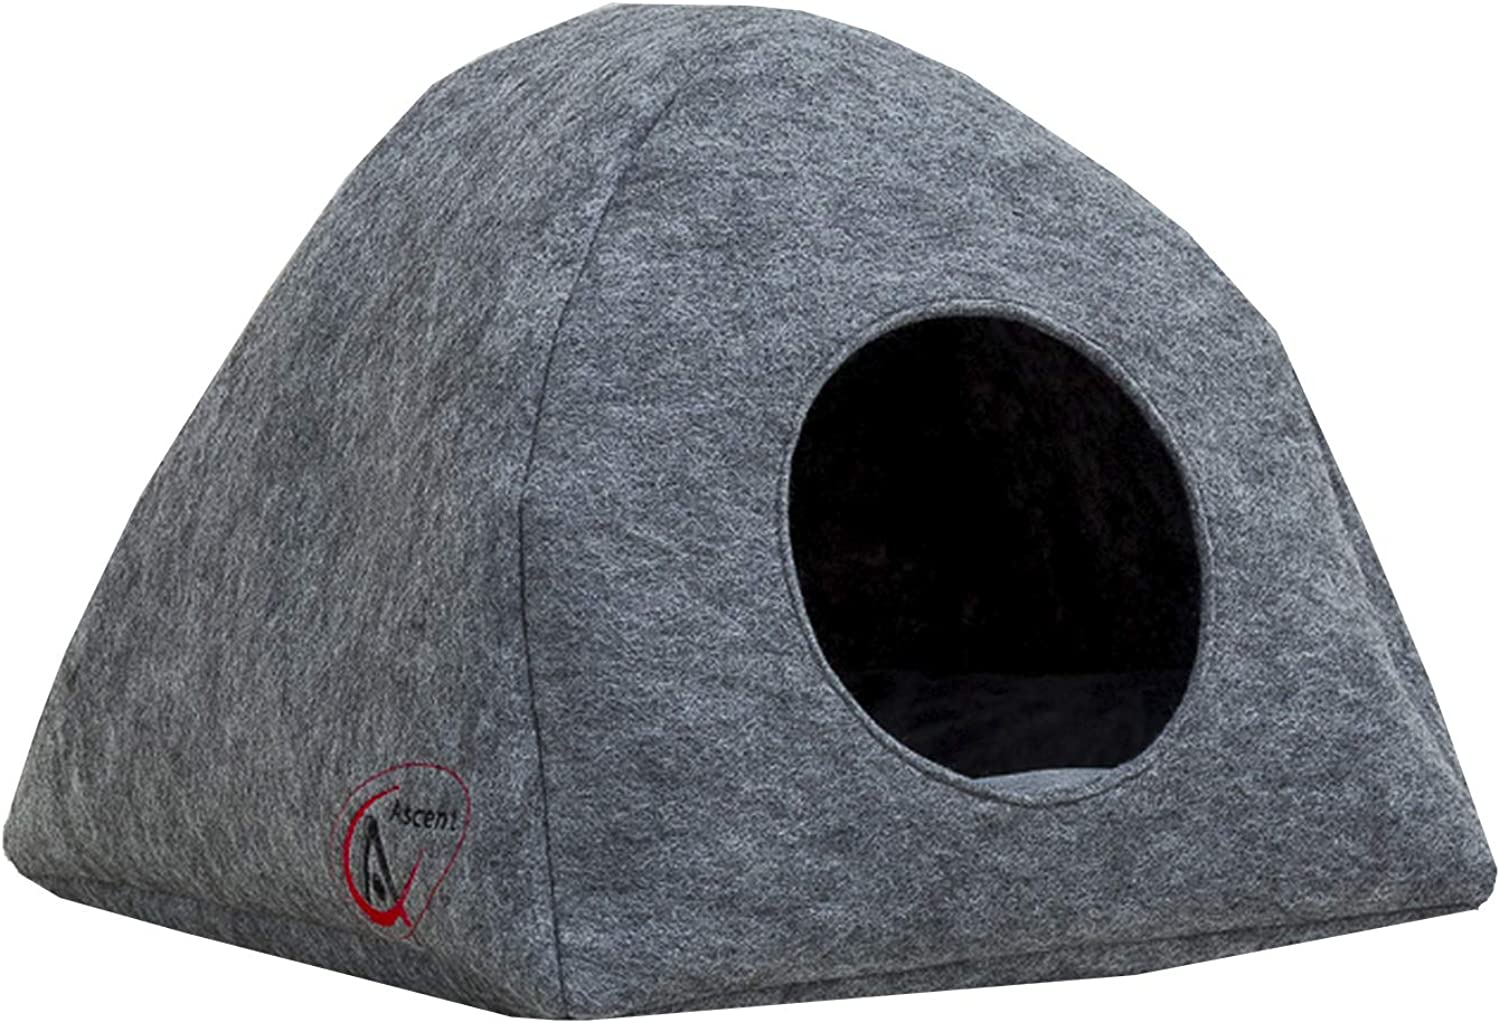 Ascent Pyramid Pet Cave Bed House  Handmade Self Warming Cubby Enclosed for Small Dogs, Cats and Kittens, Includes Cat Pillow Mat